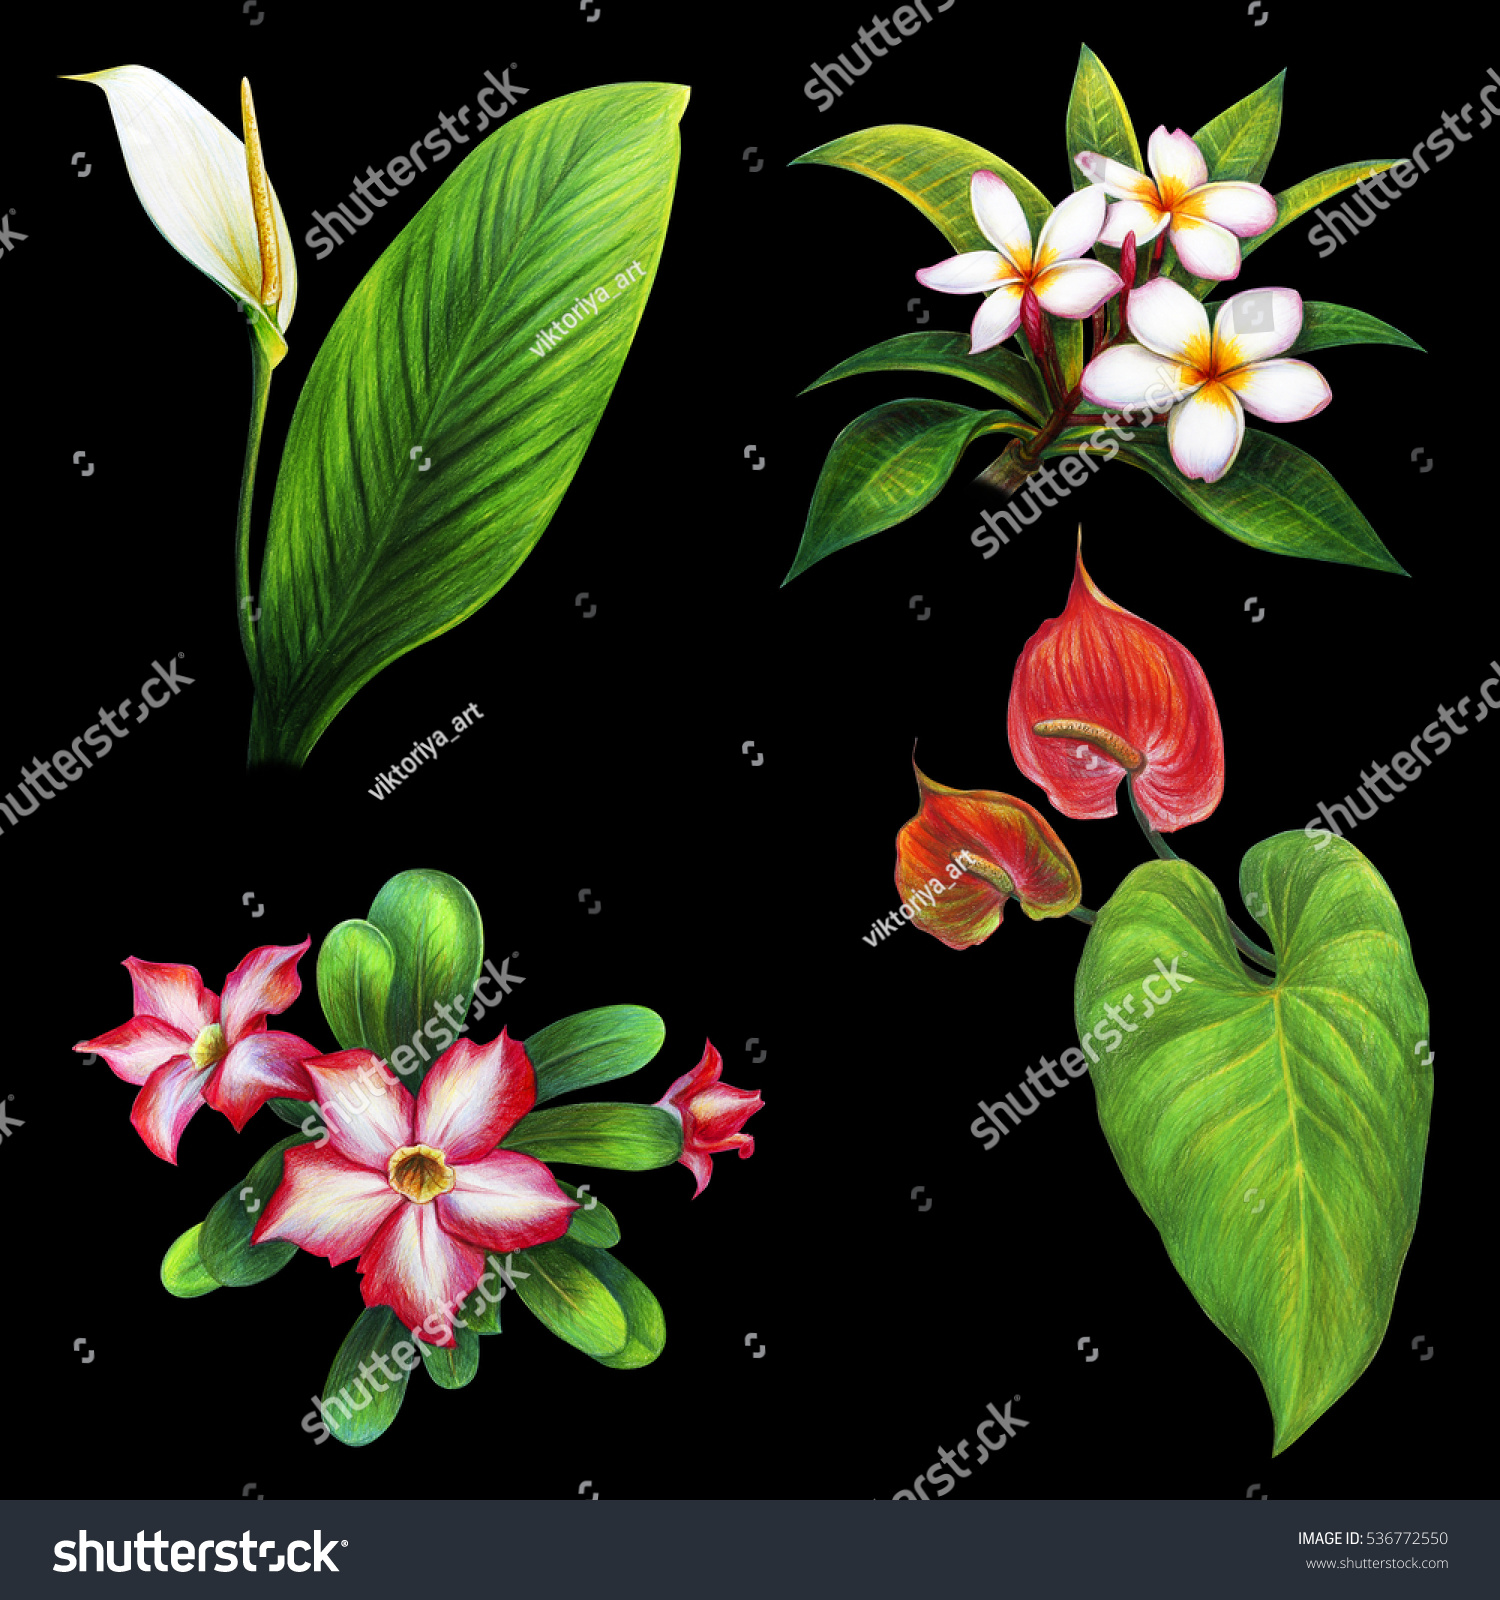 Exotic Plants And Flowers Set On Black Background (Anthurium,Frangipani,  Kalachuchi)